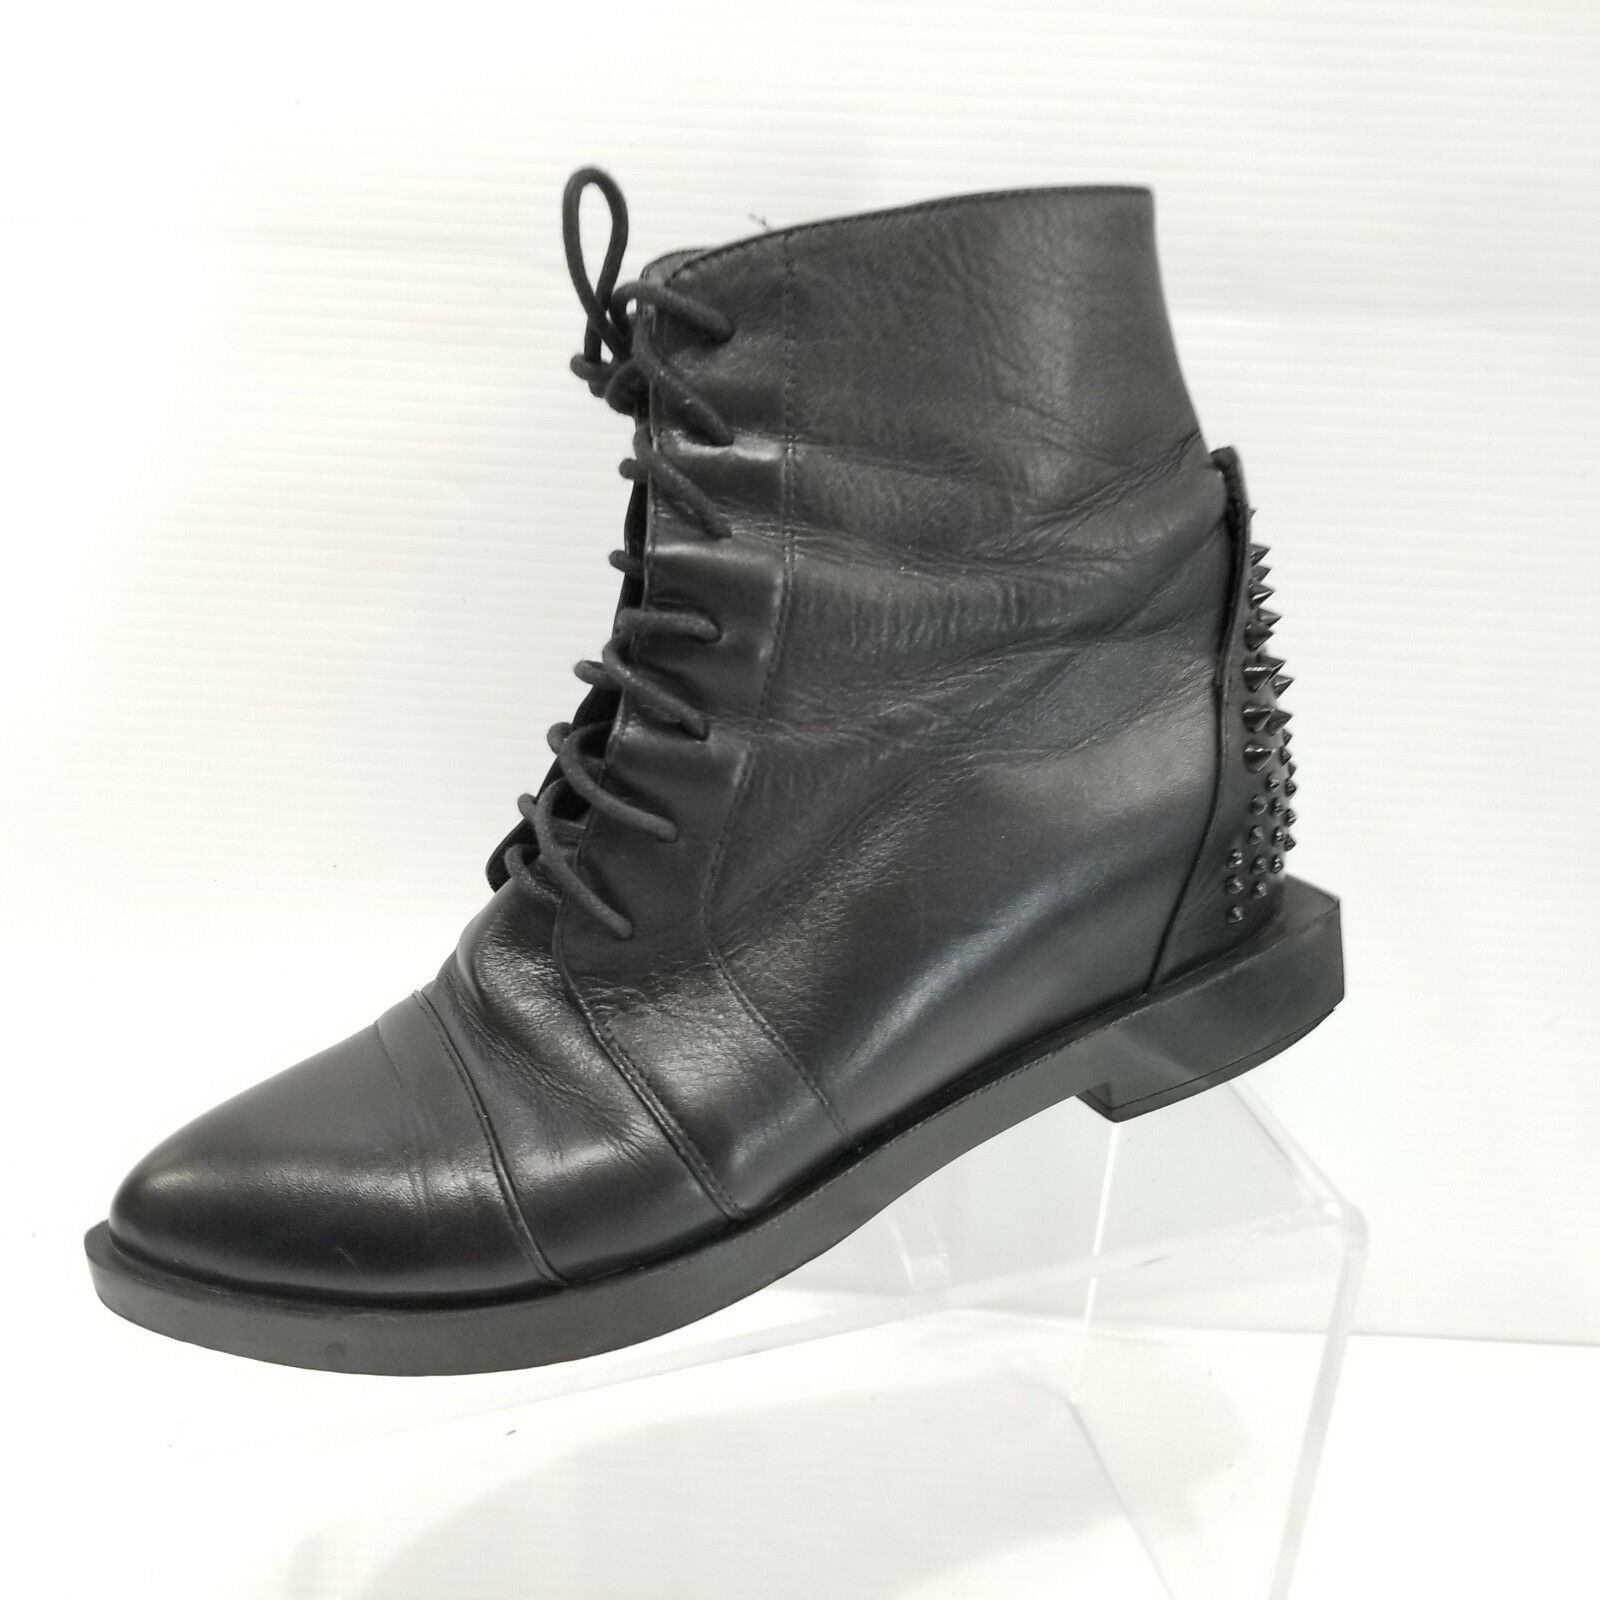 Ying Ai Black Leather Ankle Boots Point Toe Spikes Korean Size 230 / US 6